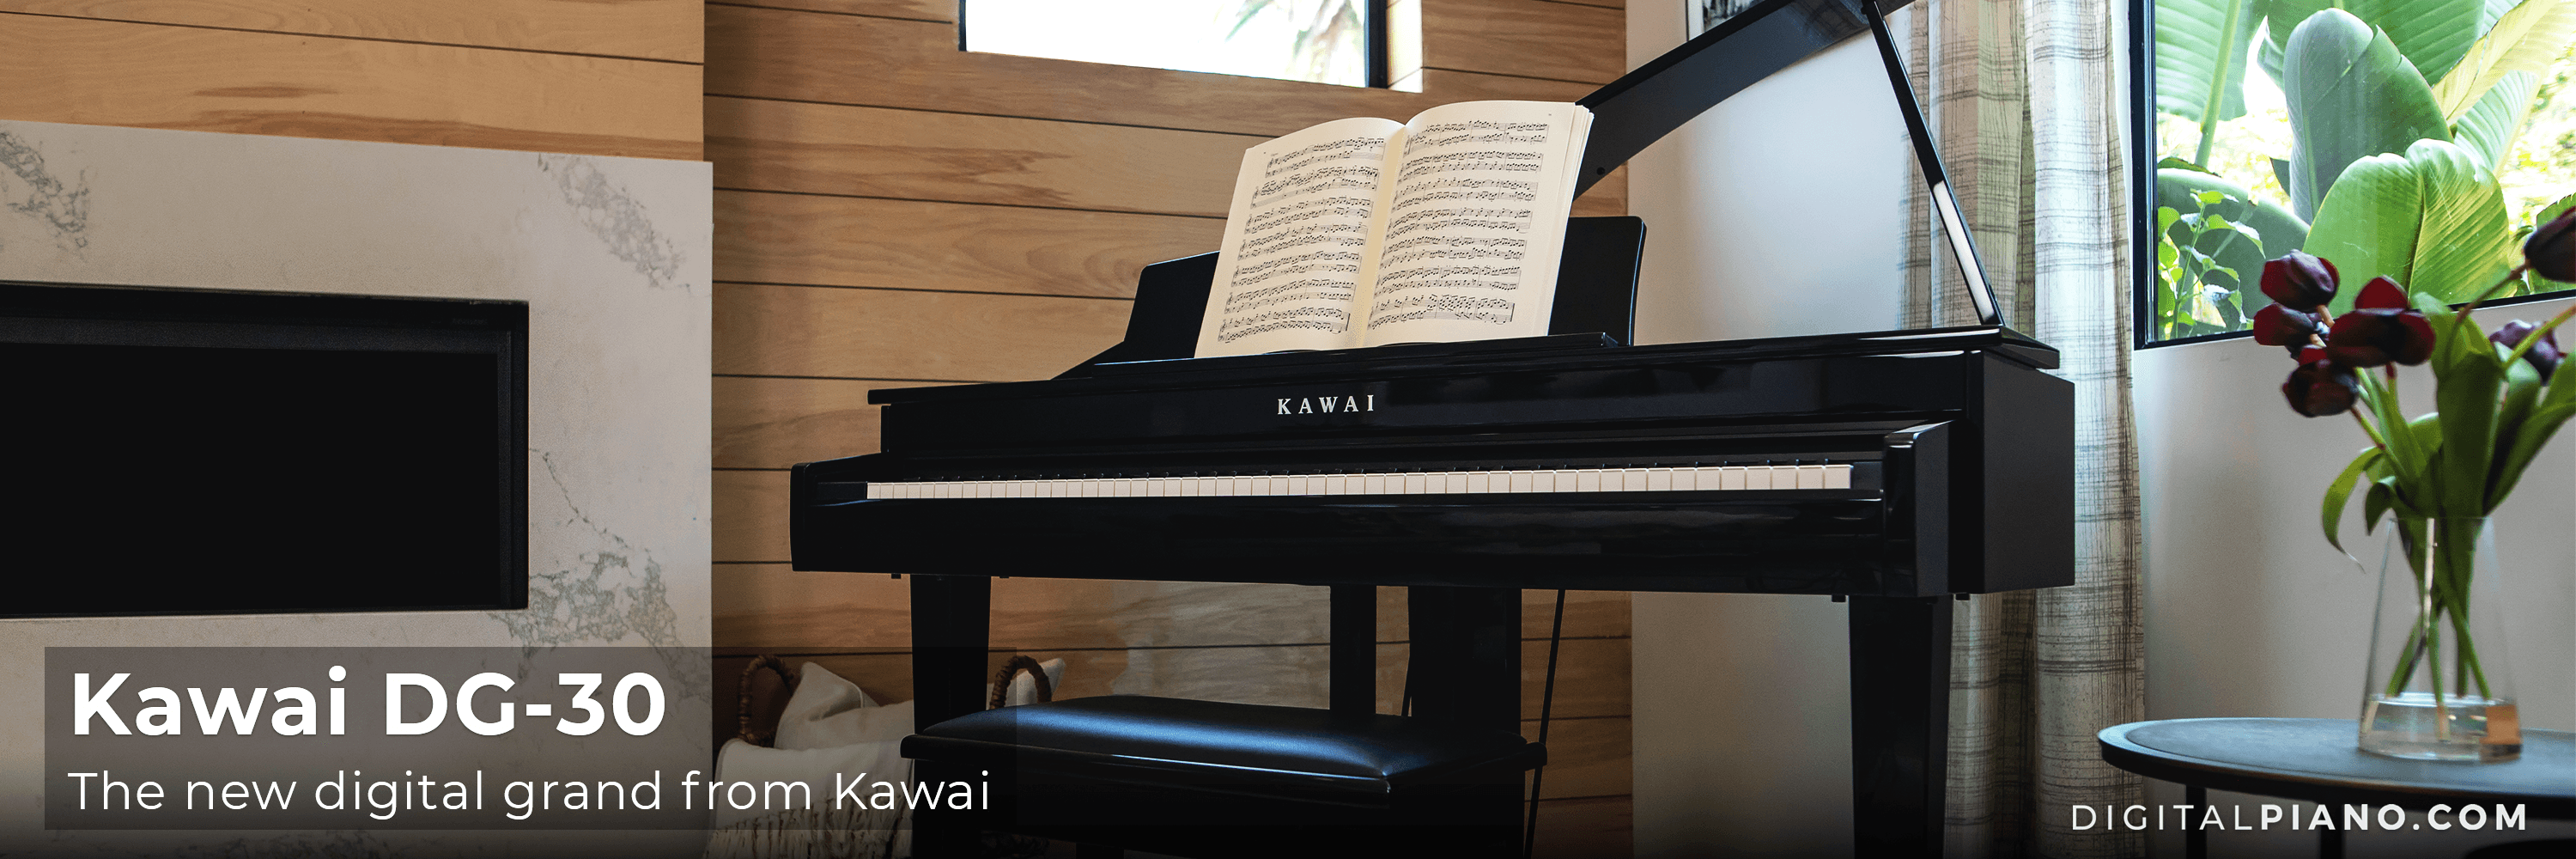 The new digital grand from Kawai: DG-30!